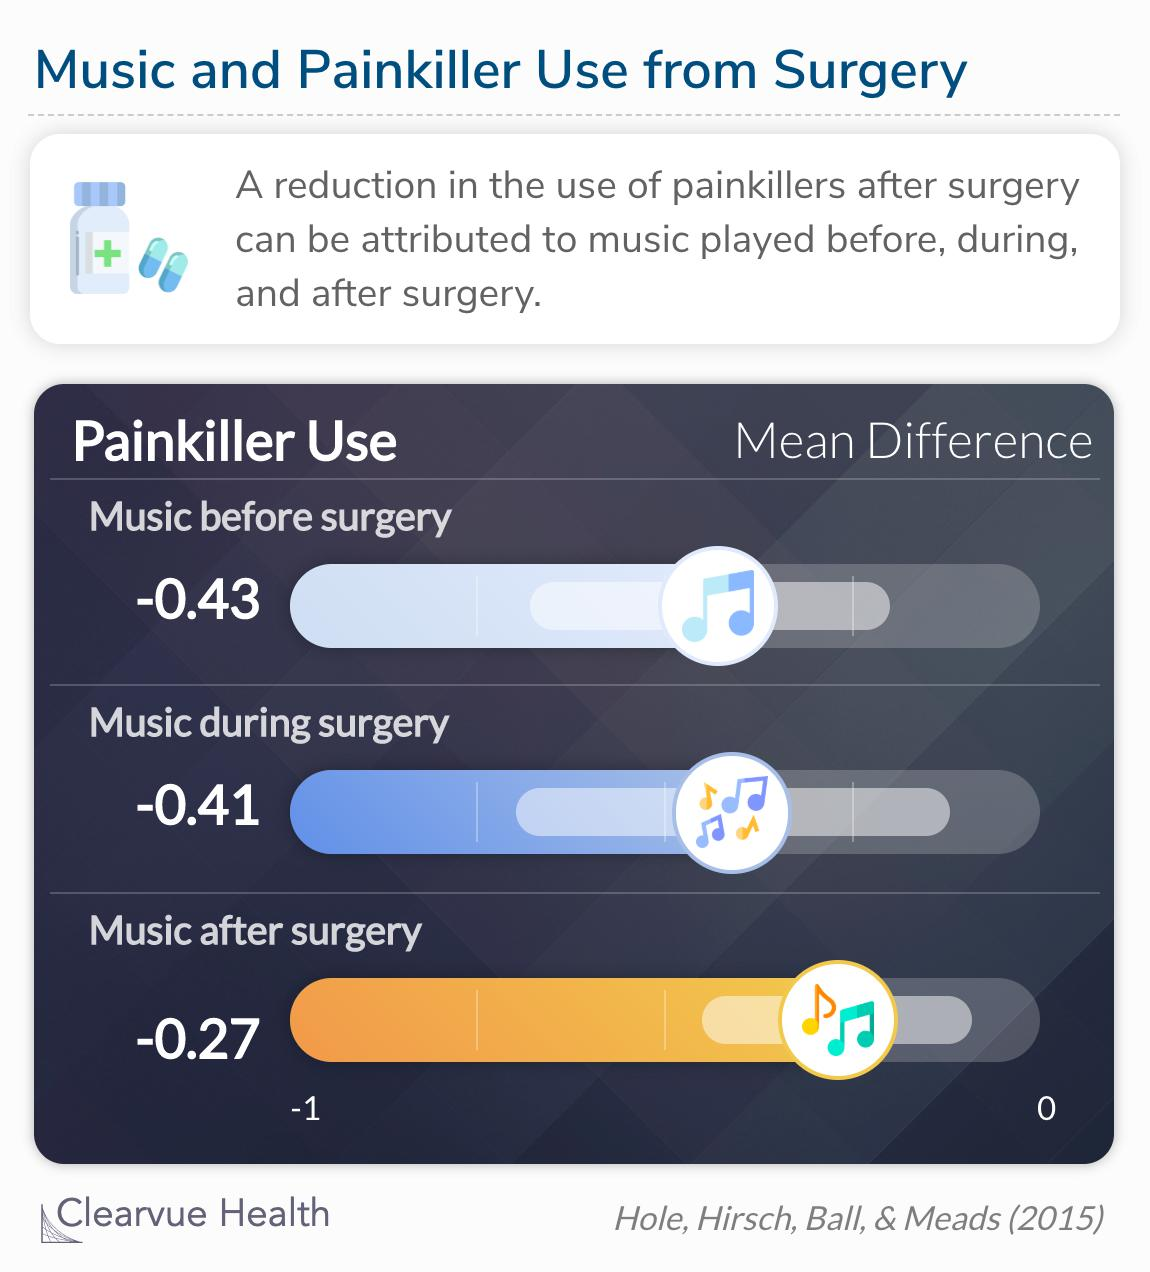 A reduction in the use of painkillers after surgery can be attributed to music played pre, intra, and post-operatively.